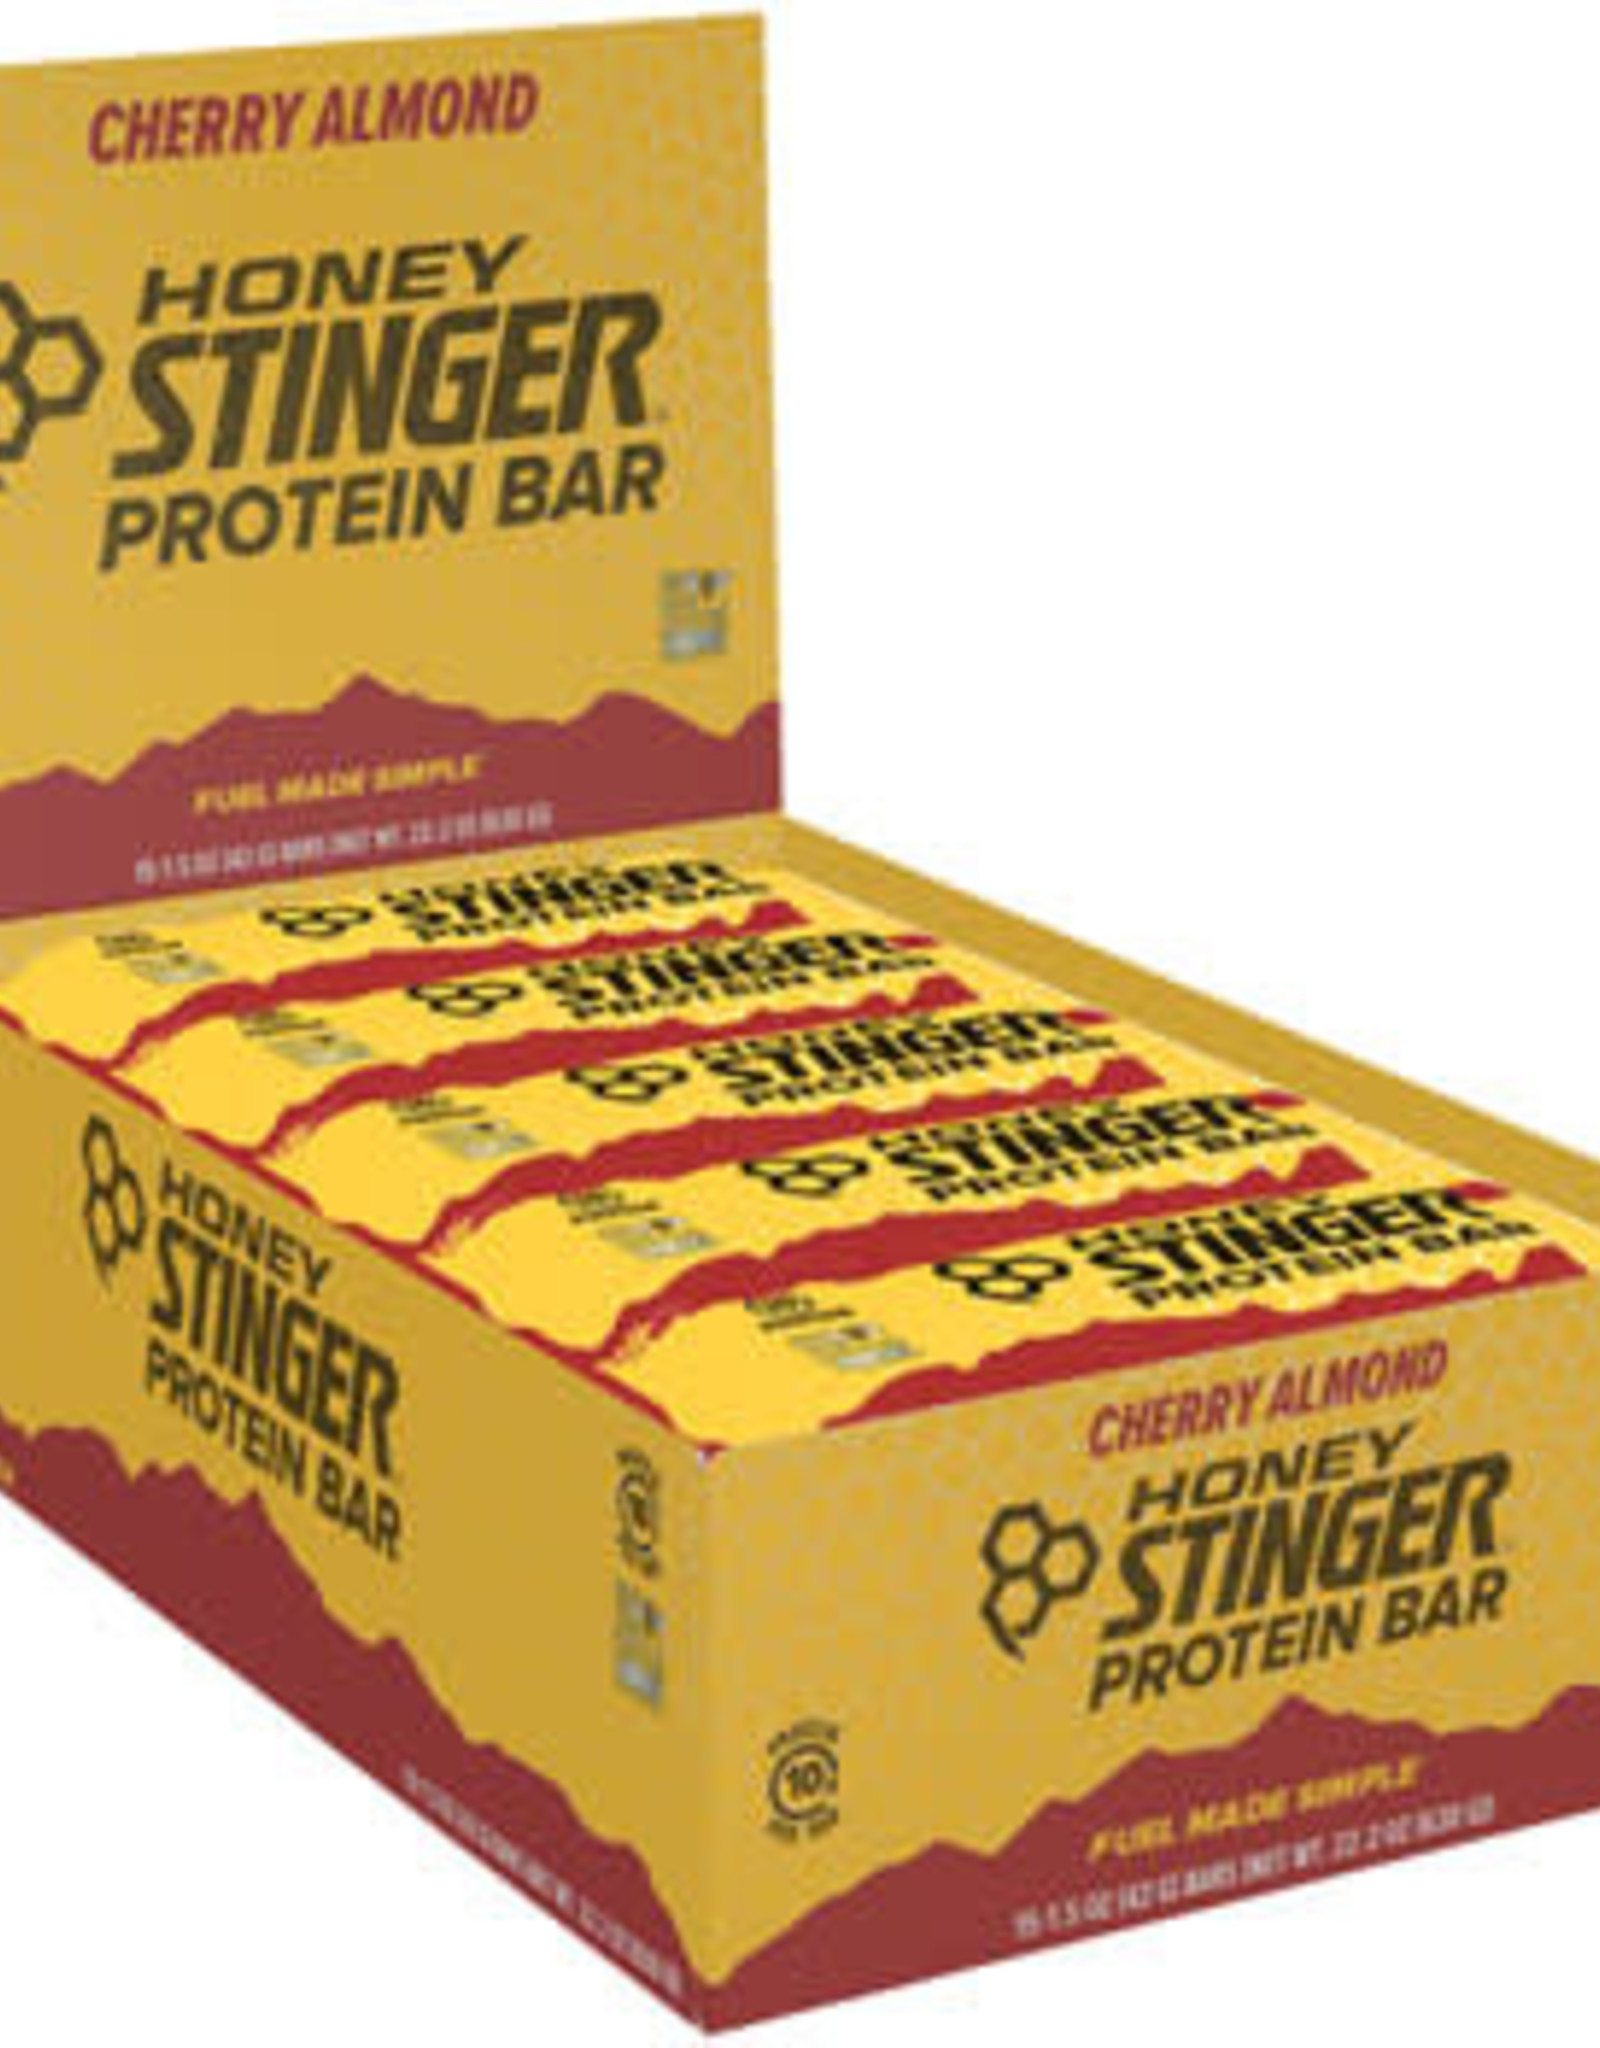 Honey Stinger Honey Stinger 10g Protein Bar: Chocolate Cherry Almond